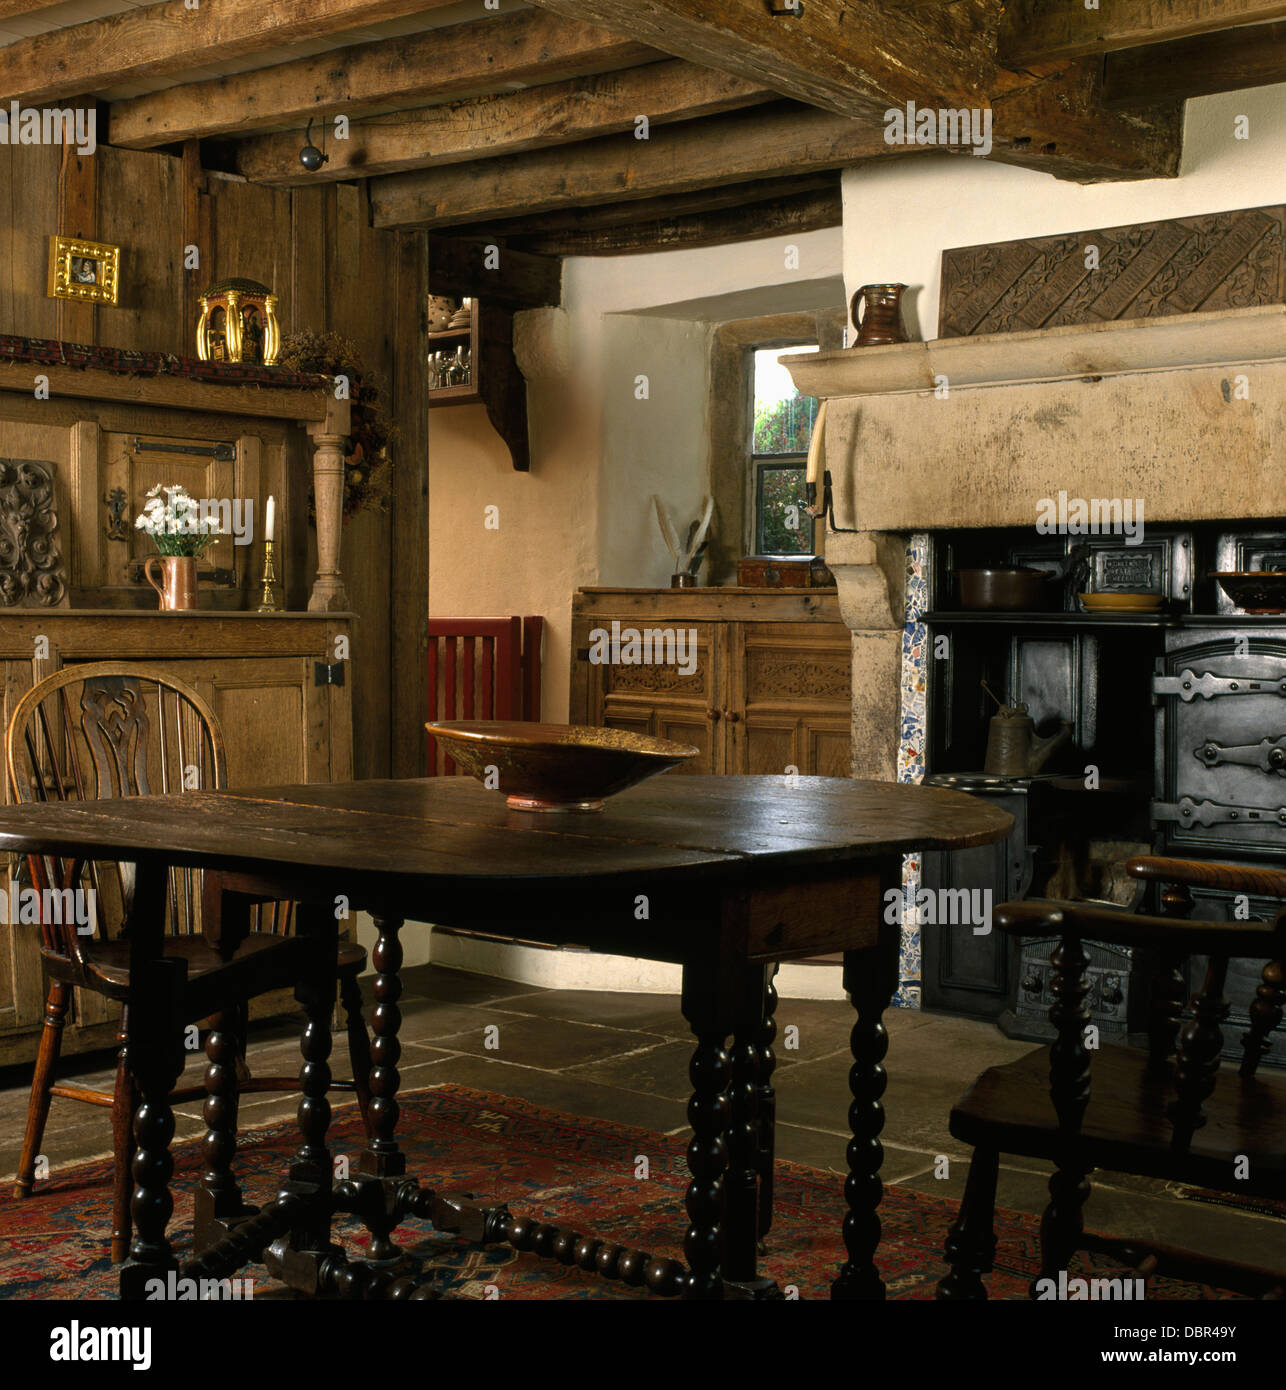 Windsor Chairs And Jacobean Oak Table With Barley Twist Legs In